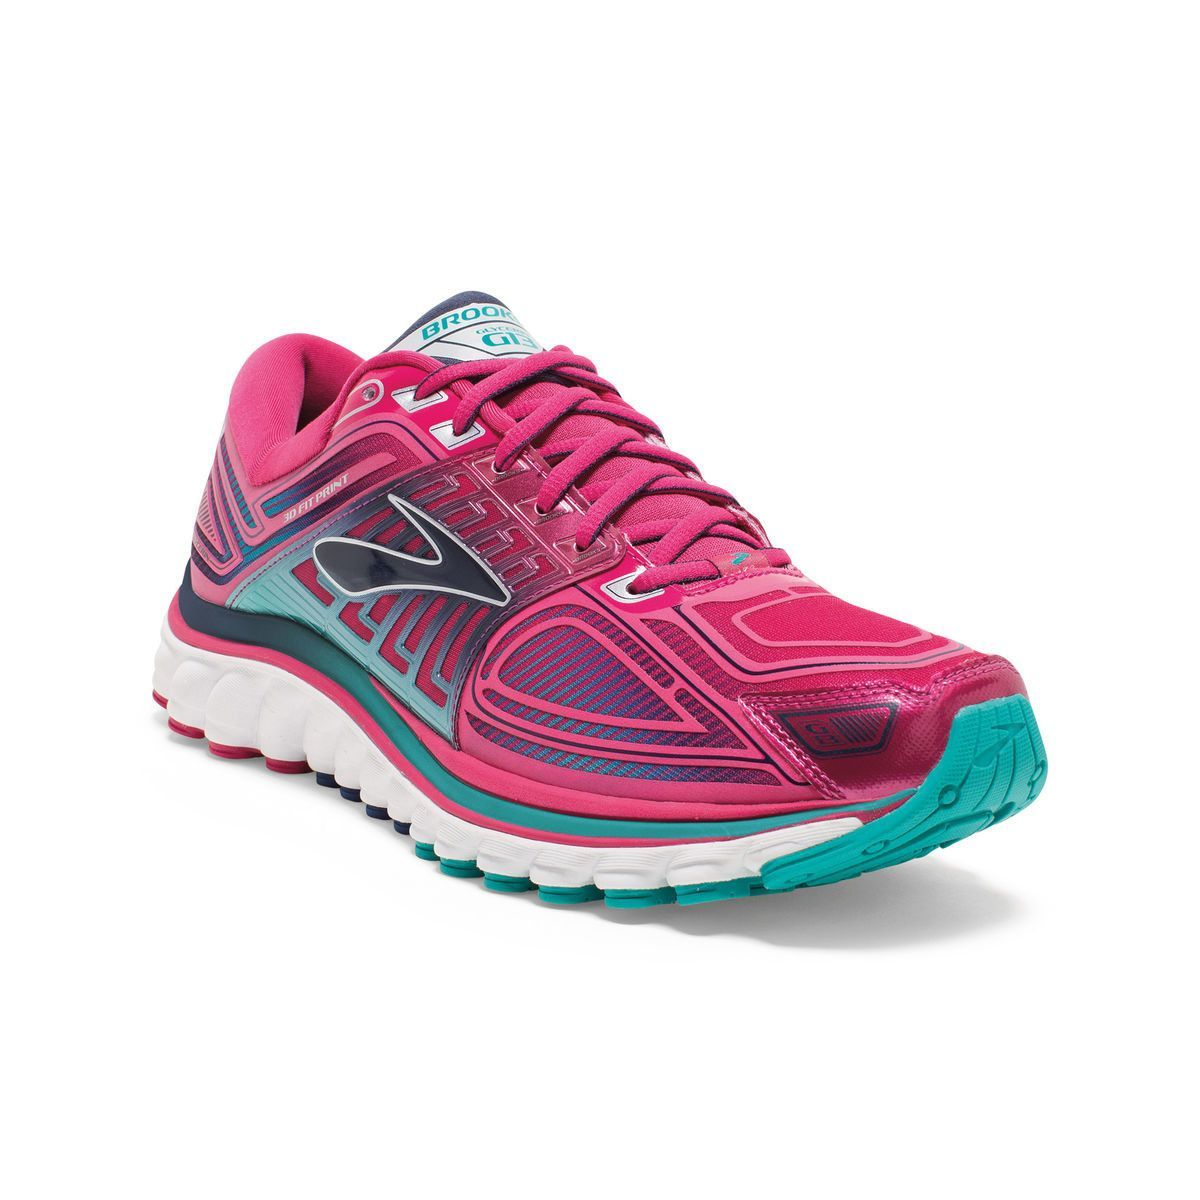 Love my BROOKS GLYCERIN 13 WOMEN S. The best running shoes I ve owned. f3468c0306ed